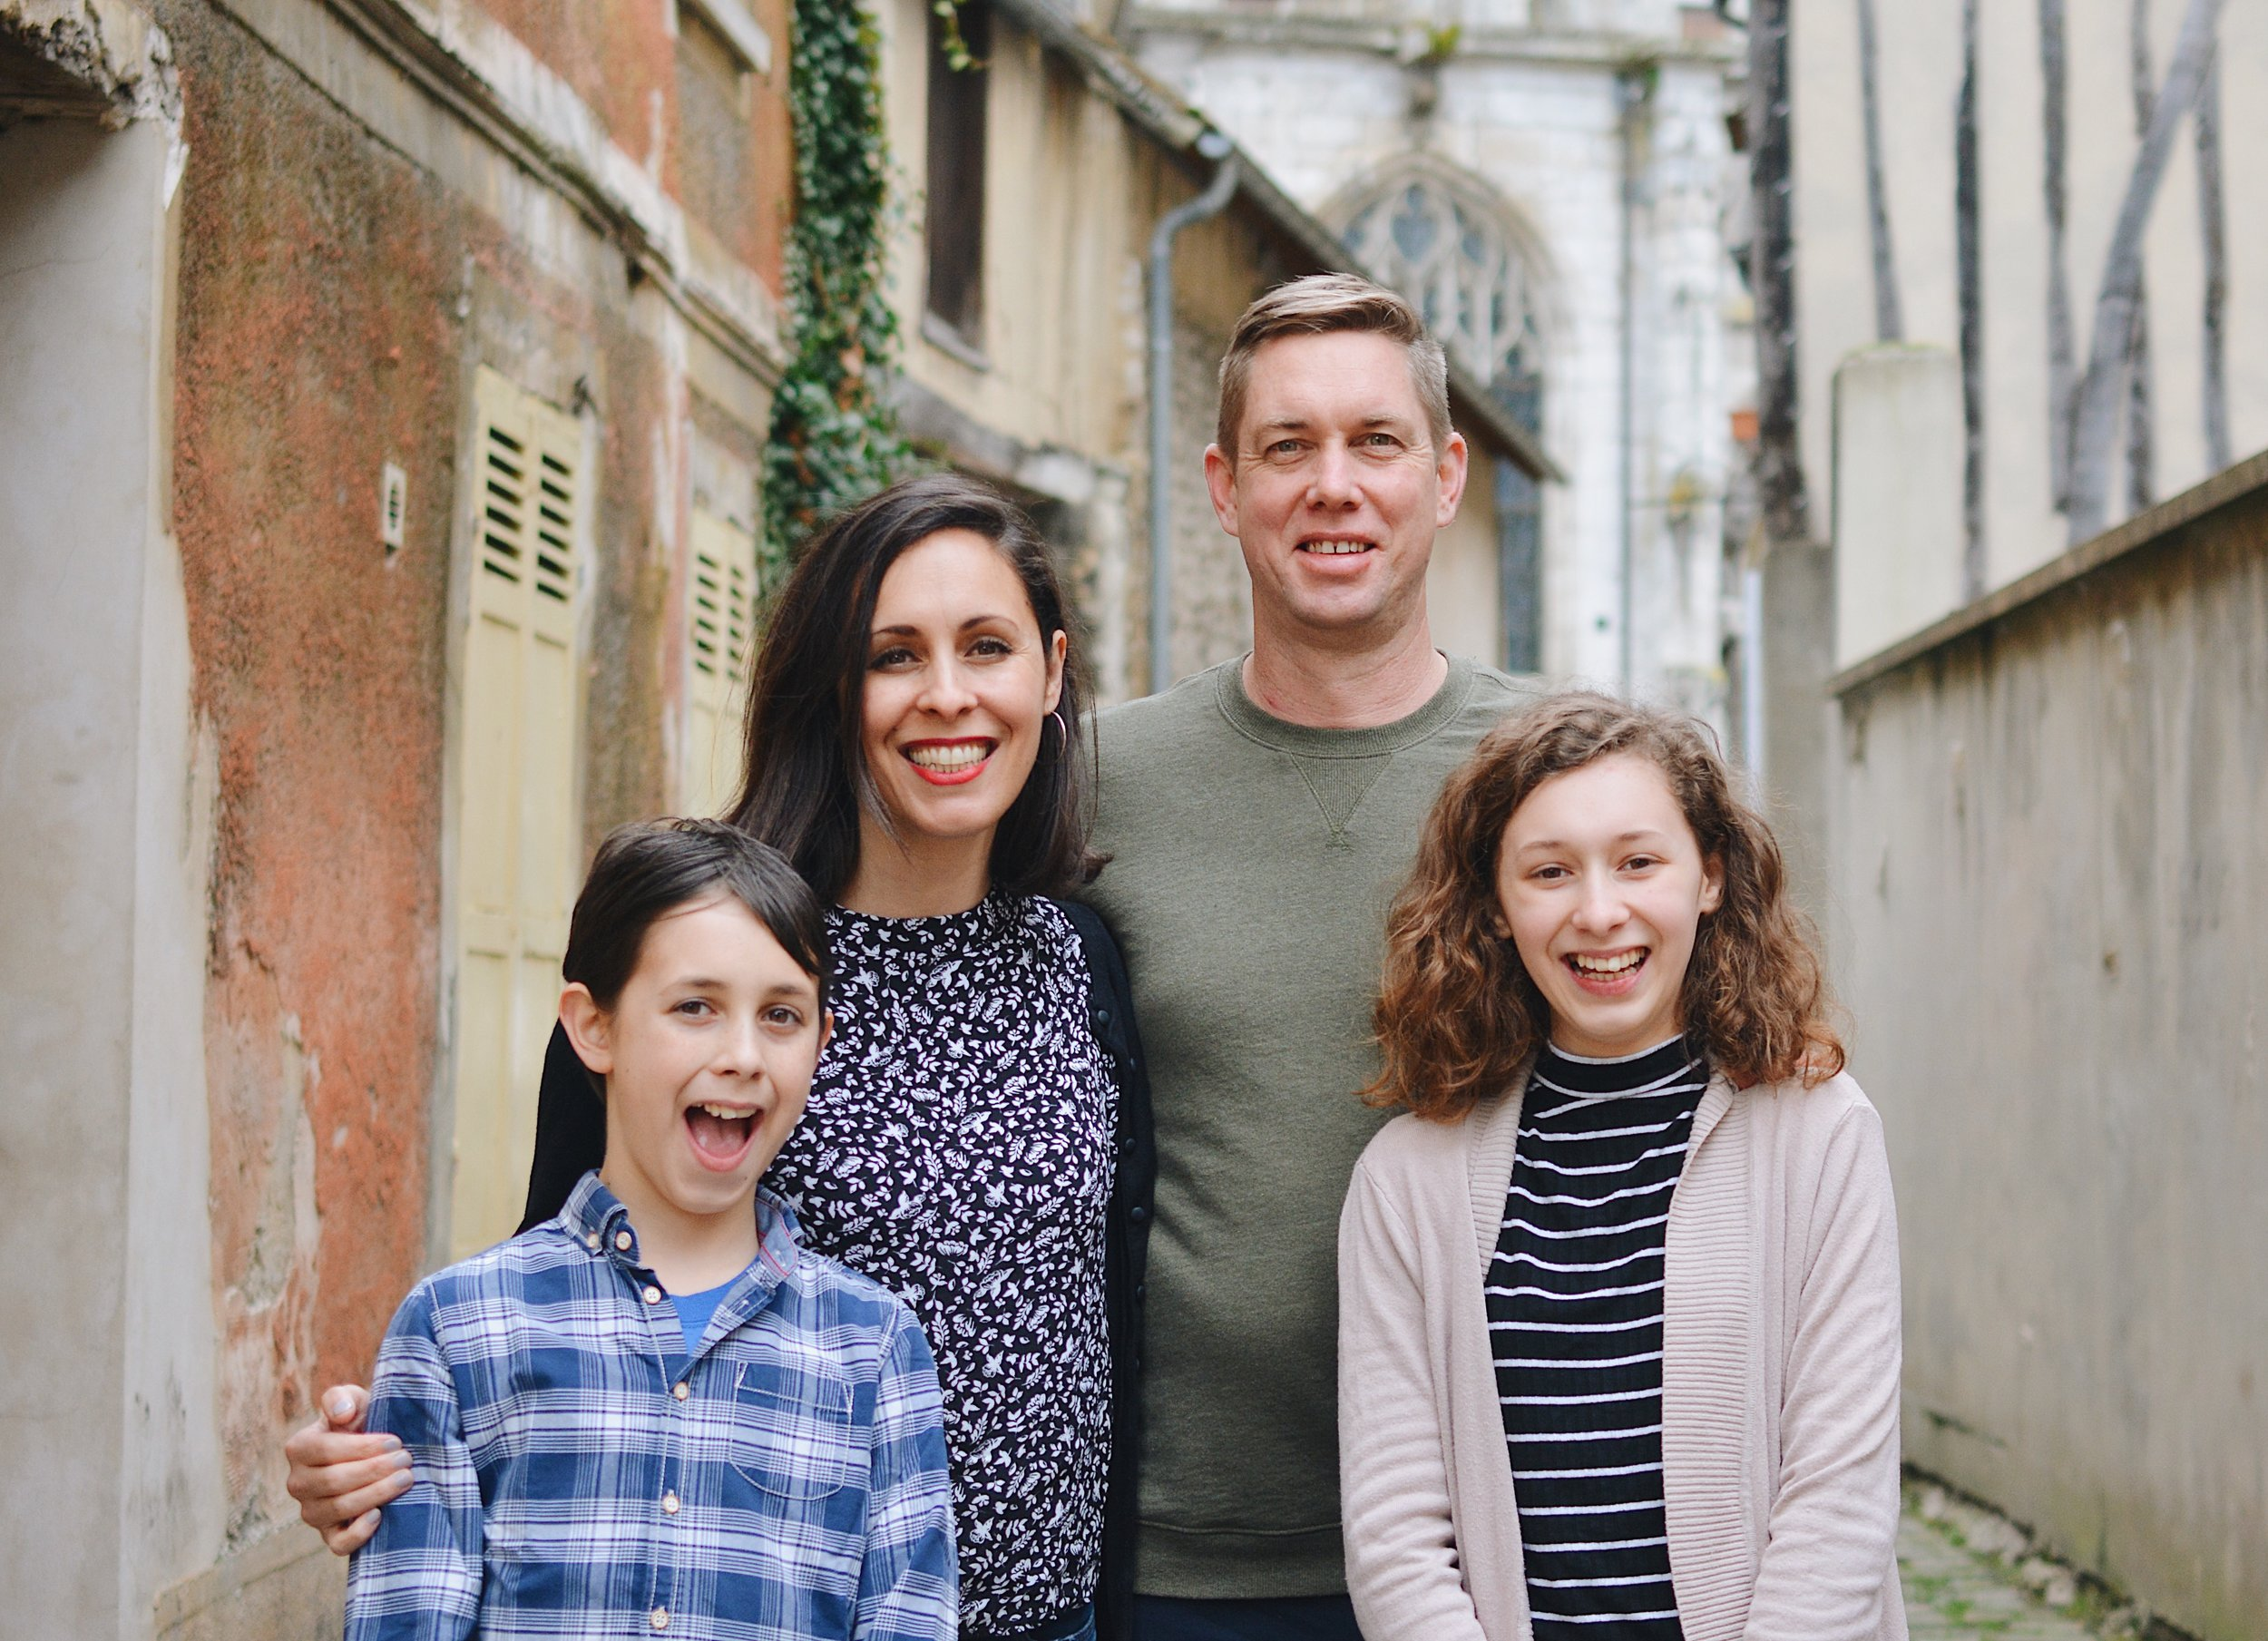 The Stewart Family - Jeff, Sonja, Josephine, and Asher have left America to church plant in Vernon, France.